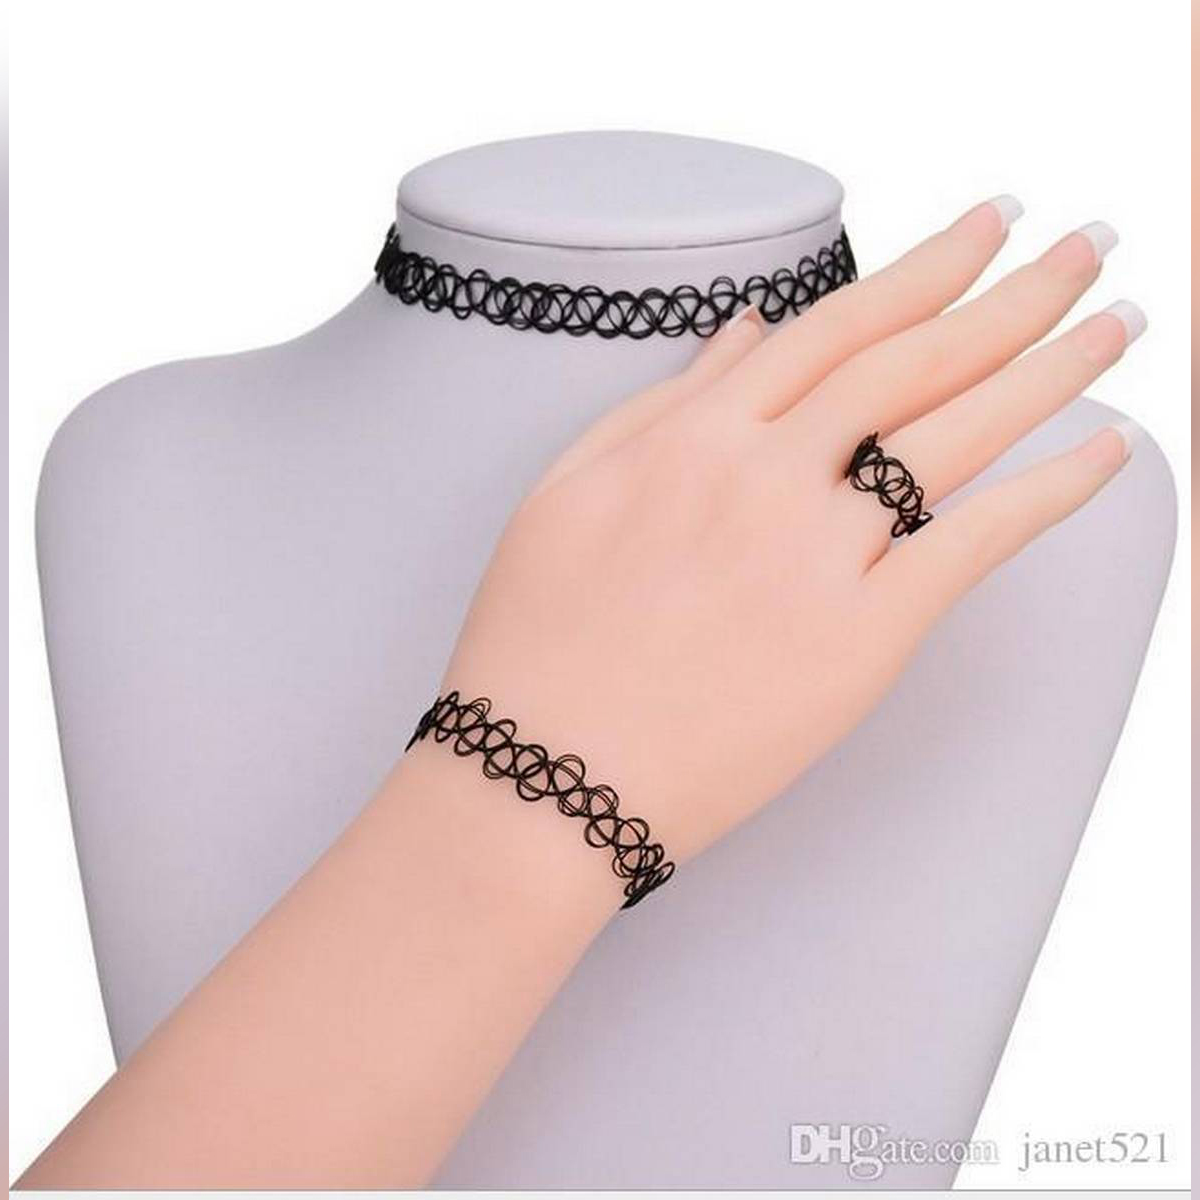 Thickly Interwined Diamond Chokers - Black -Attractive